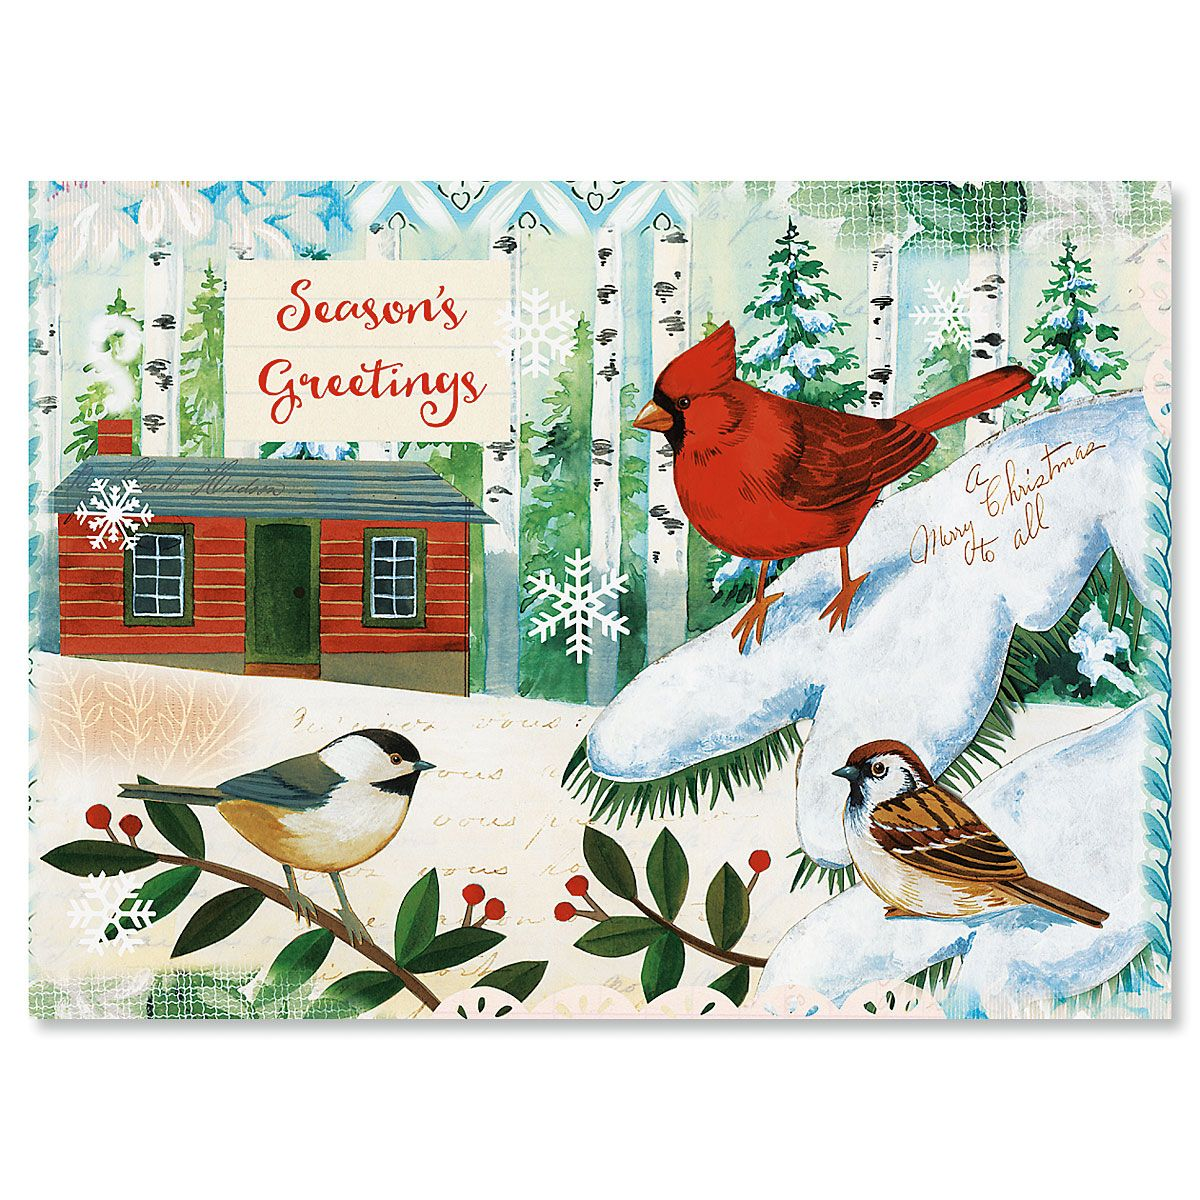 Winter Birds Nonpersonalized Christmas Cards - Set of 18